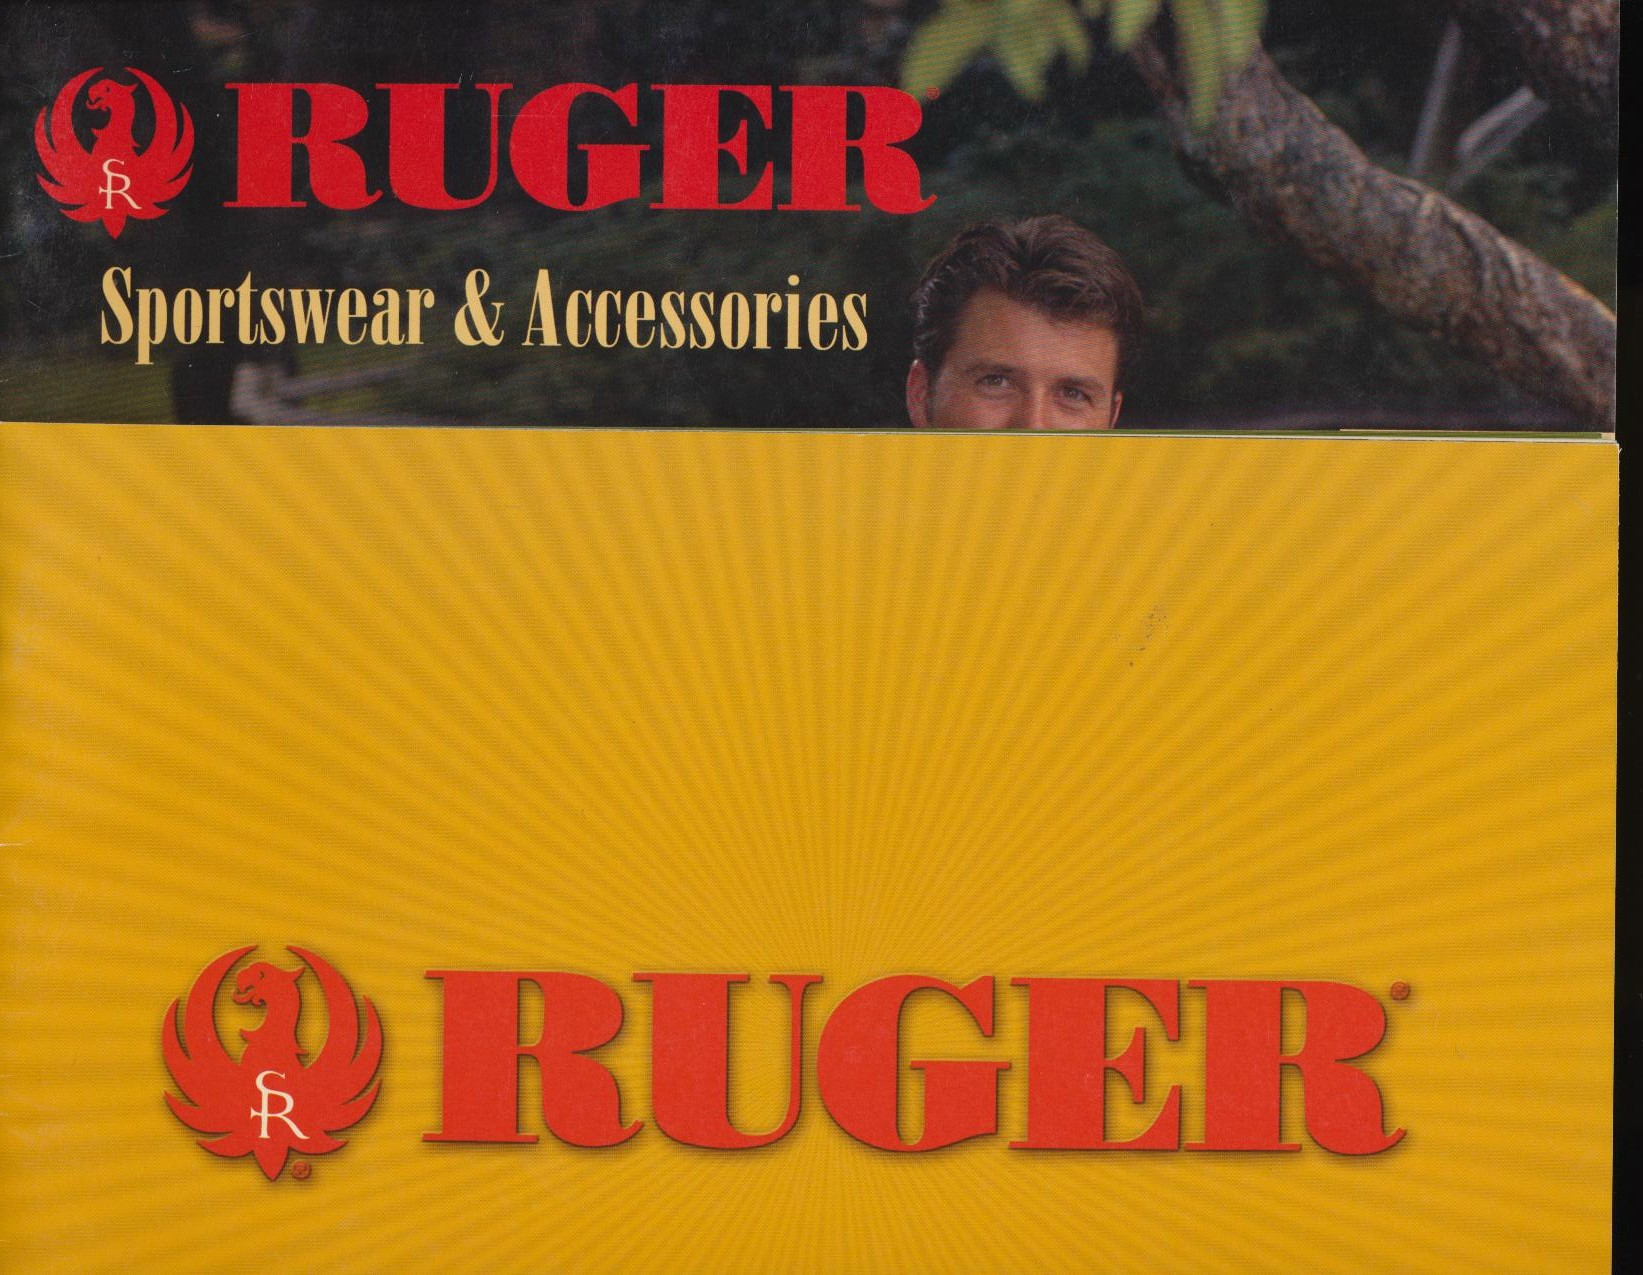 2004 Ruger Firearms Catalog + Sportswear & Accessories Catalog